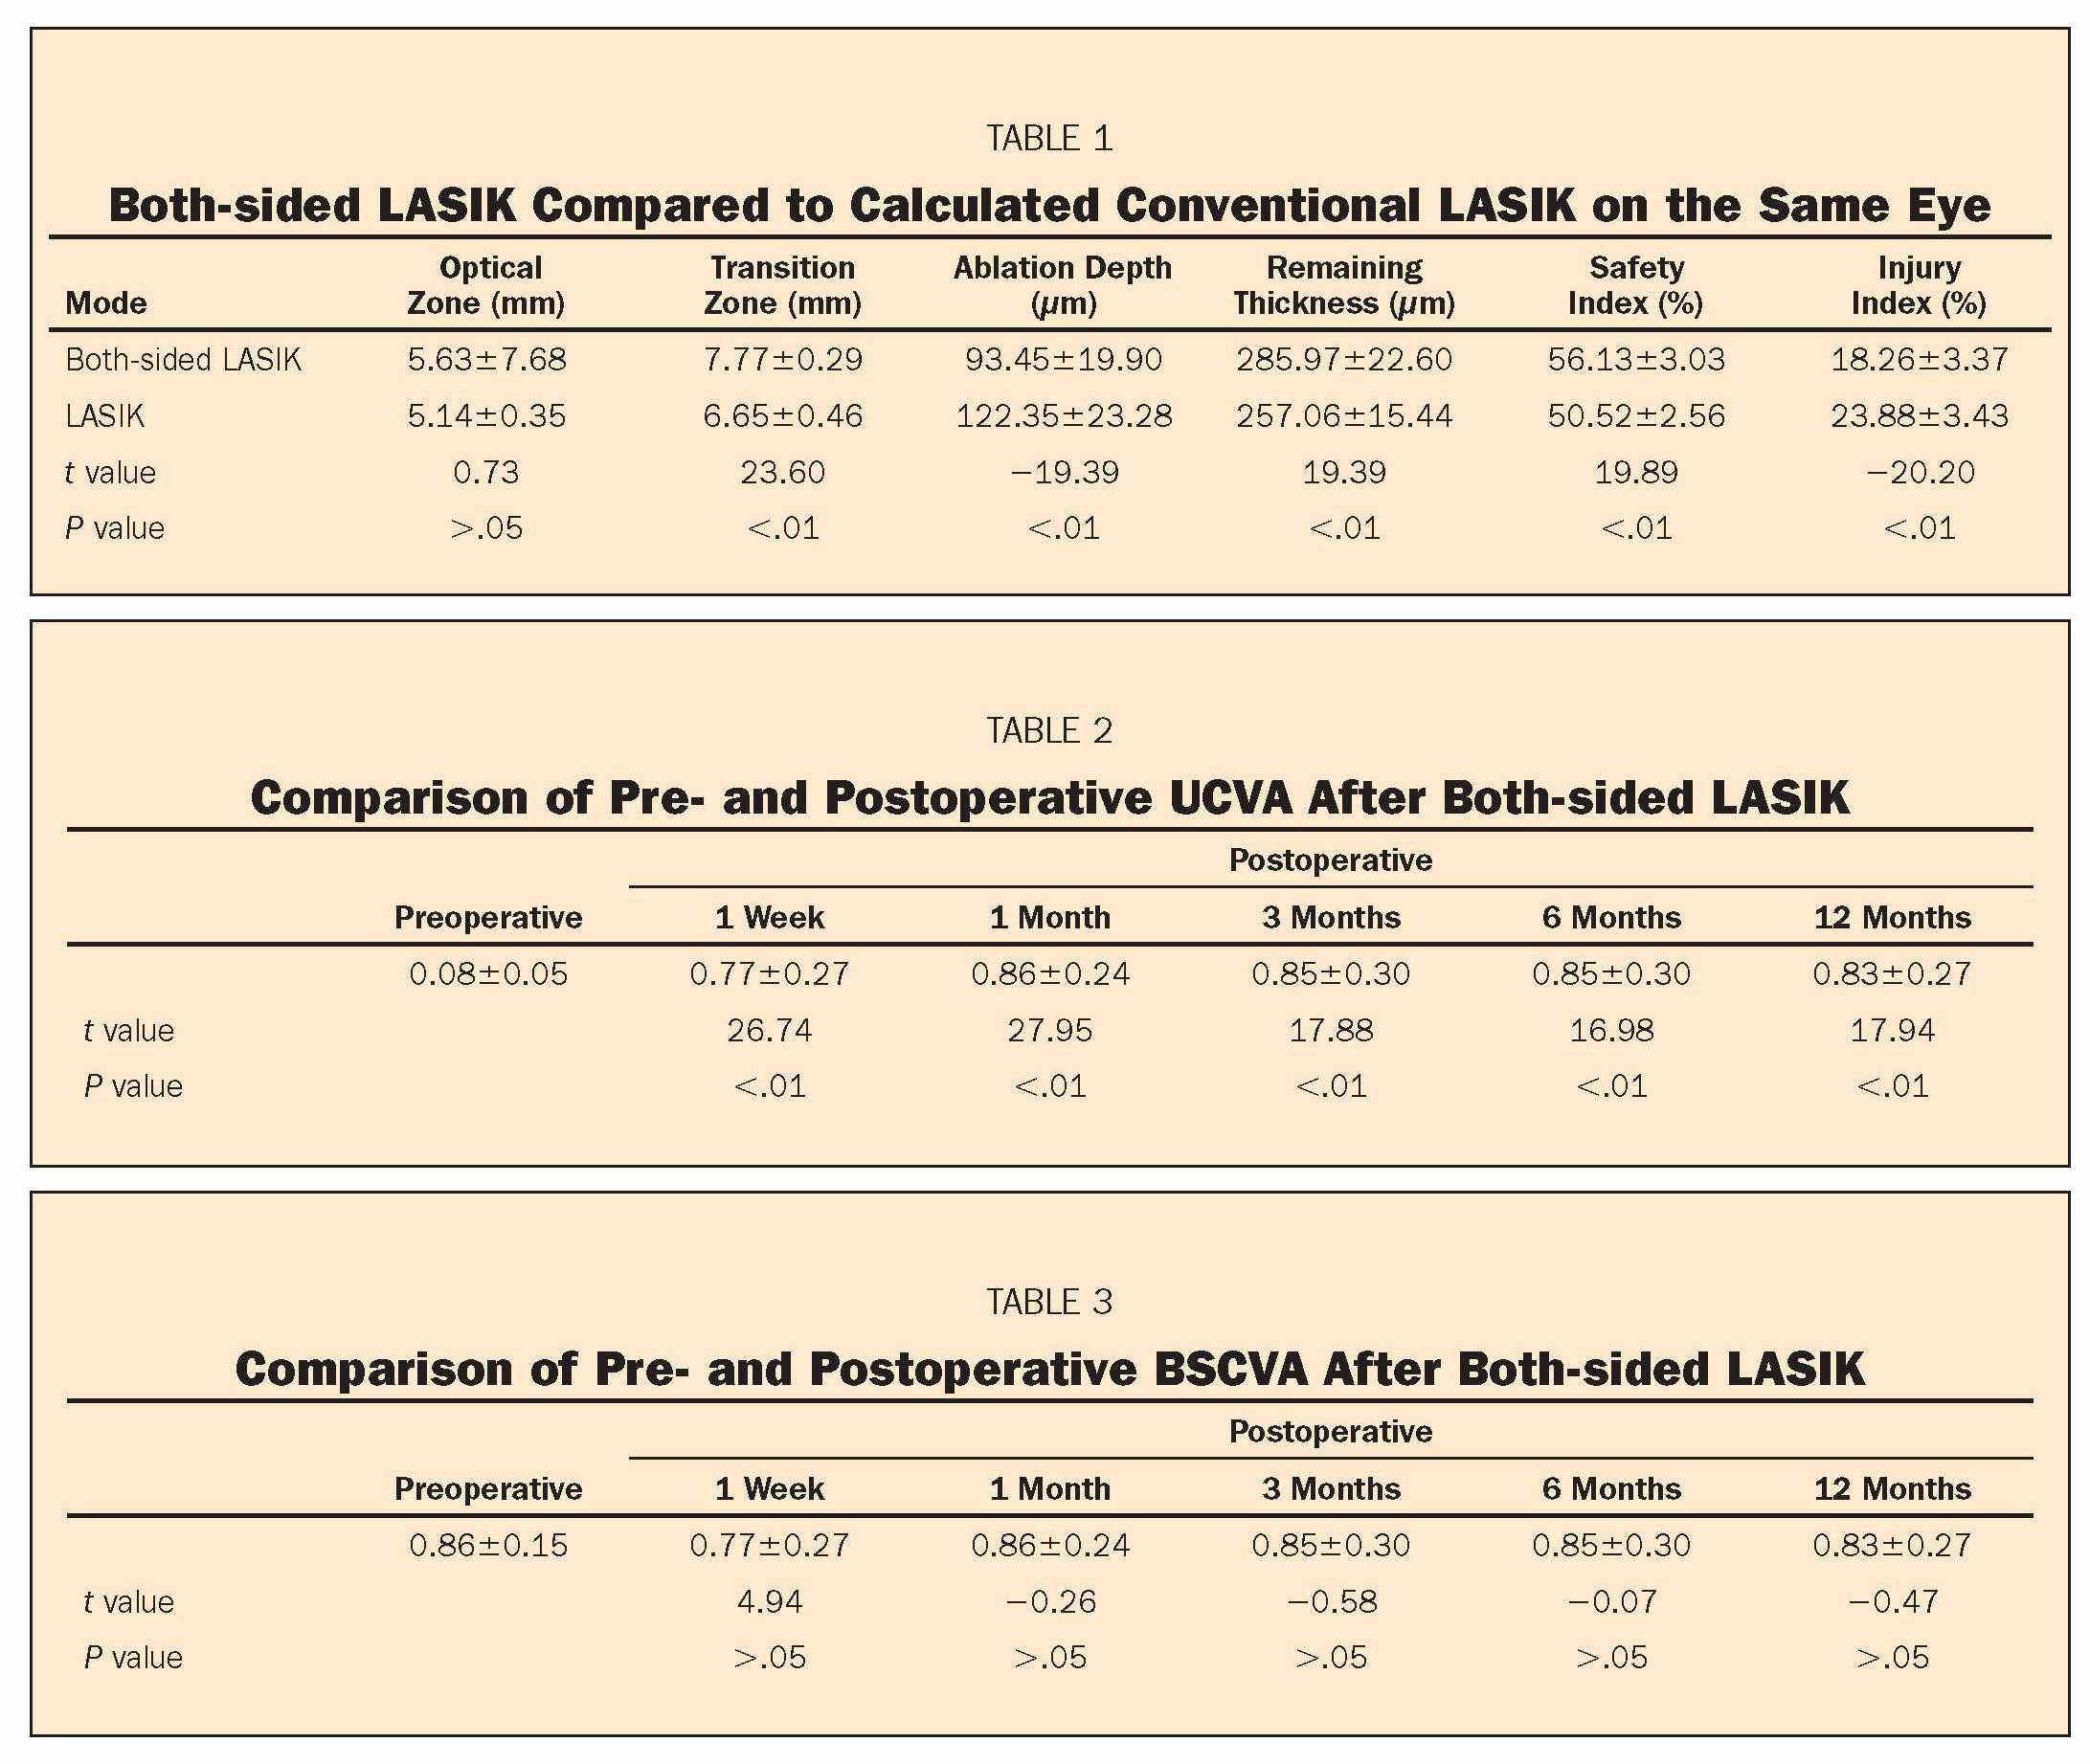 TABLE 1Both-sided LASIK Compared to Calculated Conventional LASIK on the Same EyeTABLE 2Comparison of Pre- and Postoperative UCVA After Both-sided LASIKTABLE 3Comparison of Pre- and Postoperative BSCVA After Both-sided LASIK